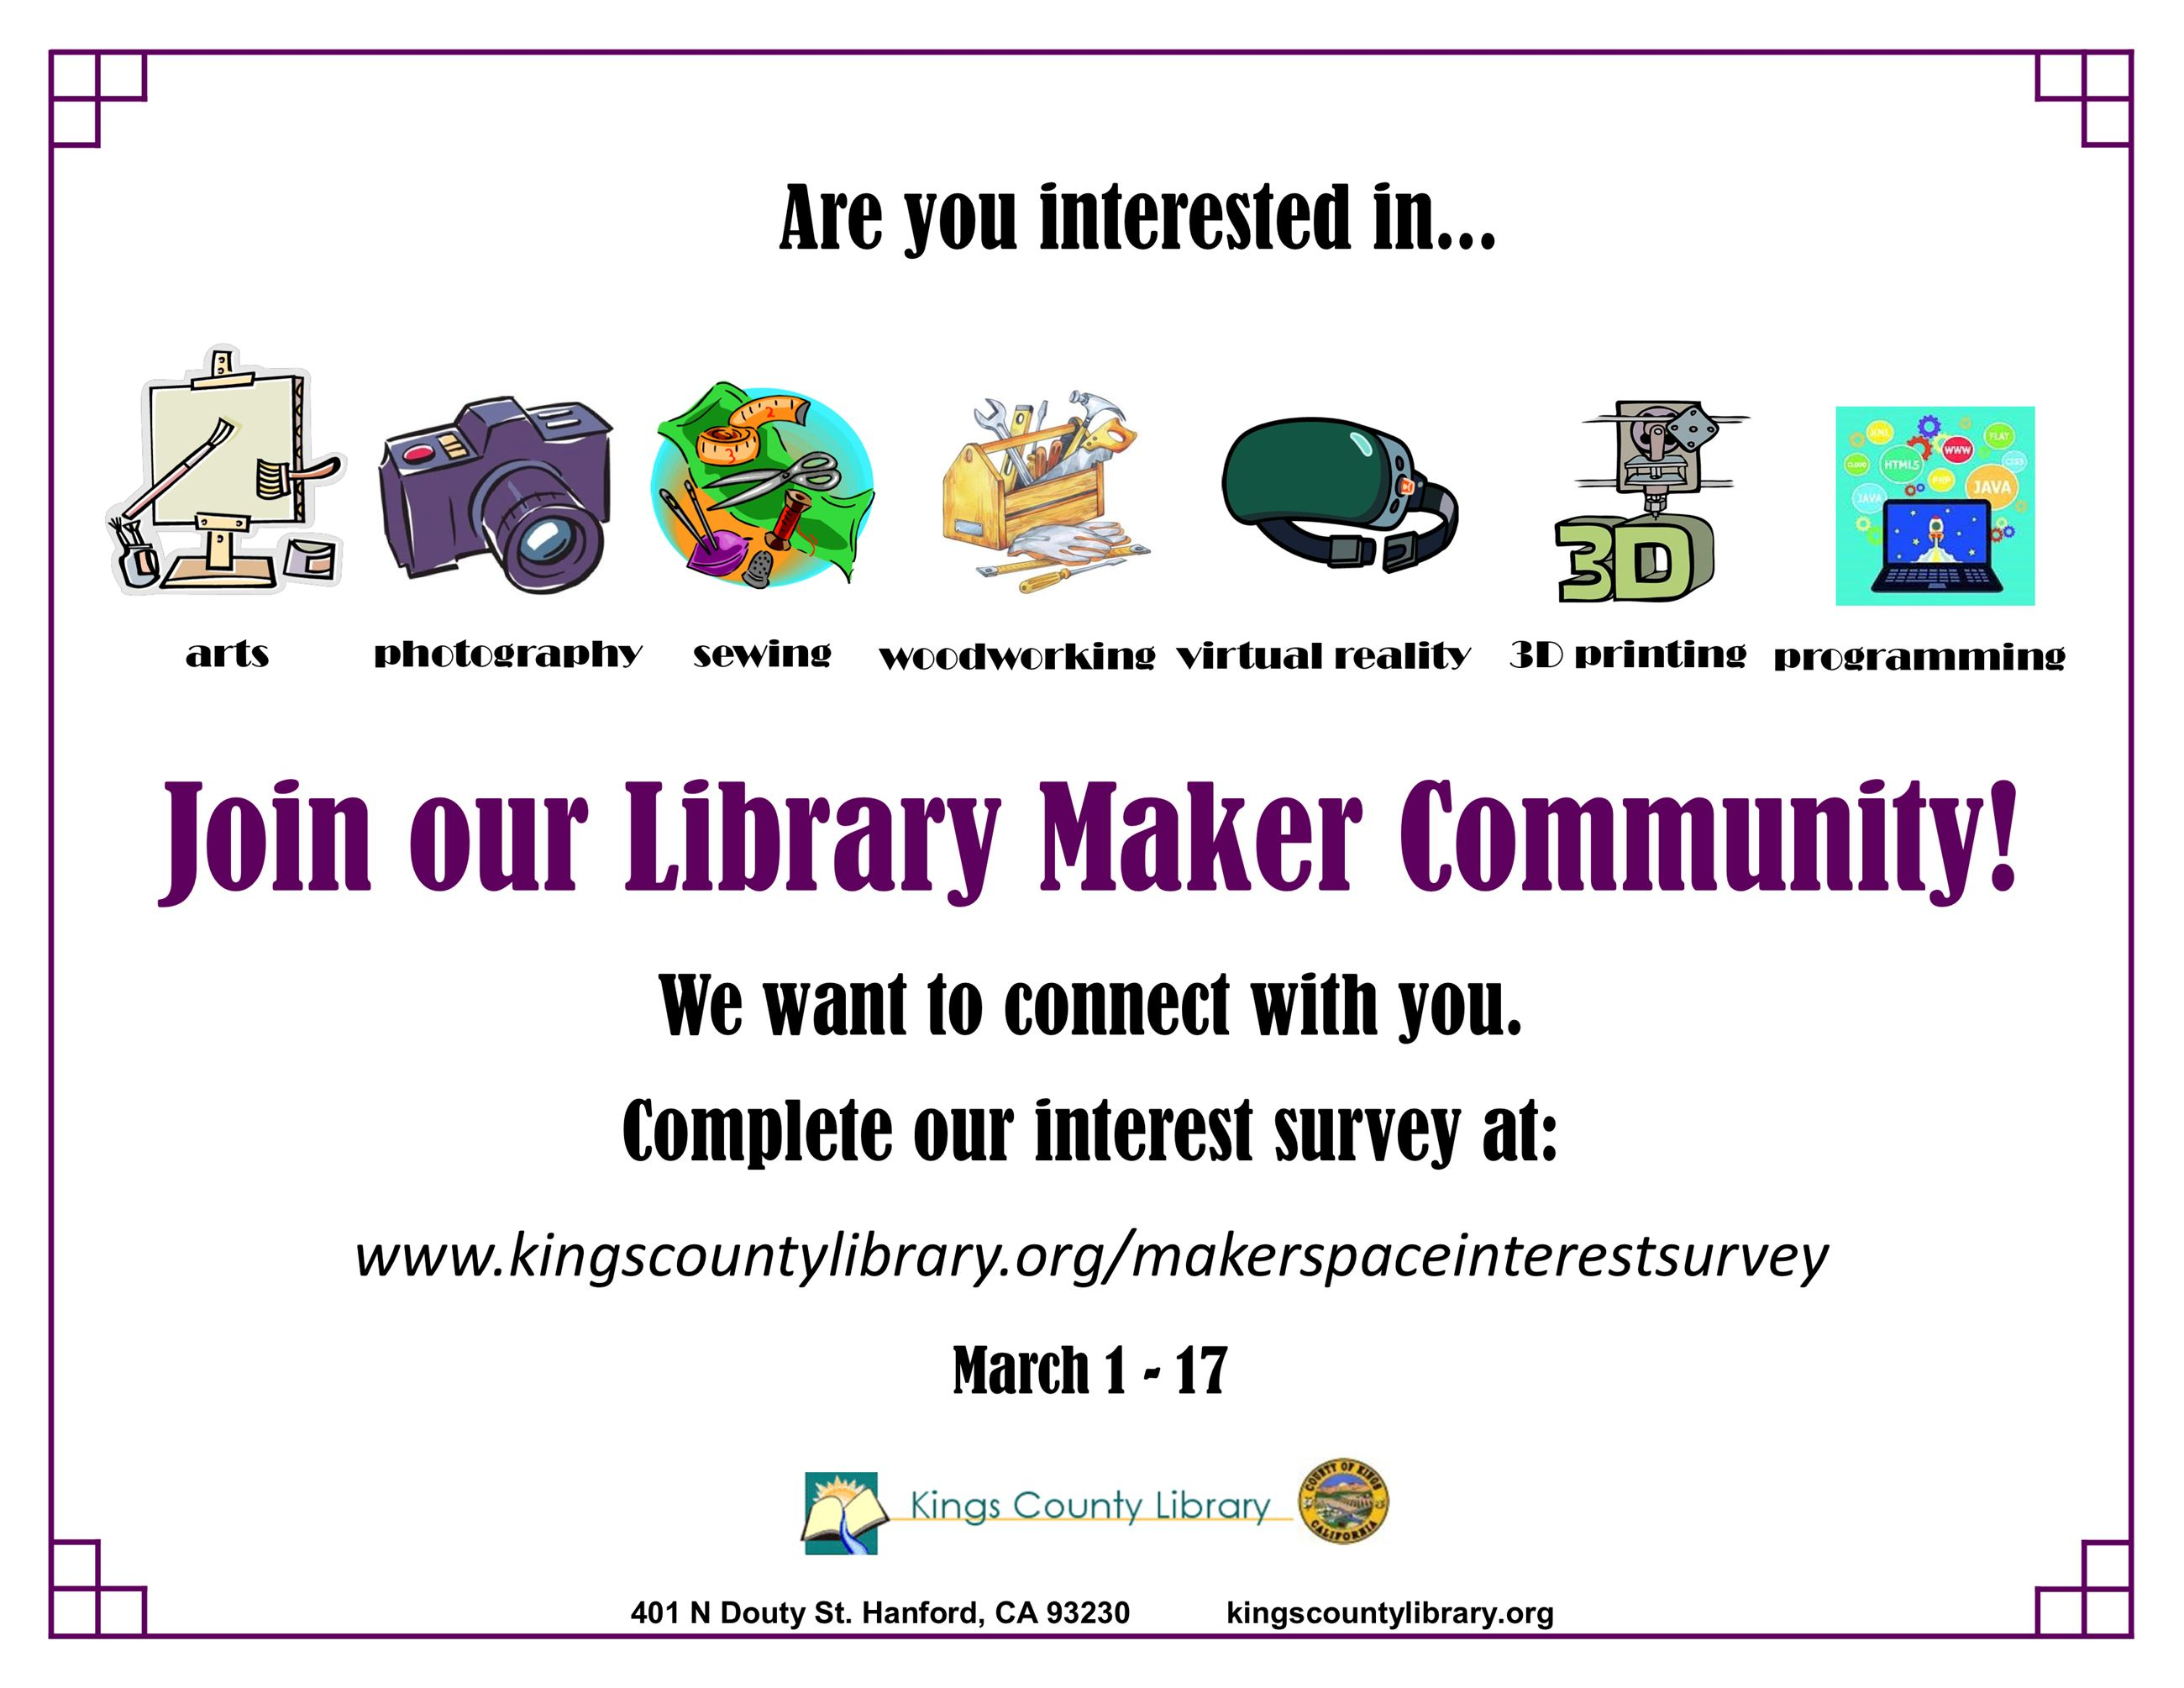 Library Maker Community flyer